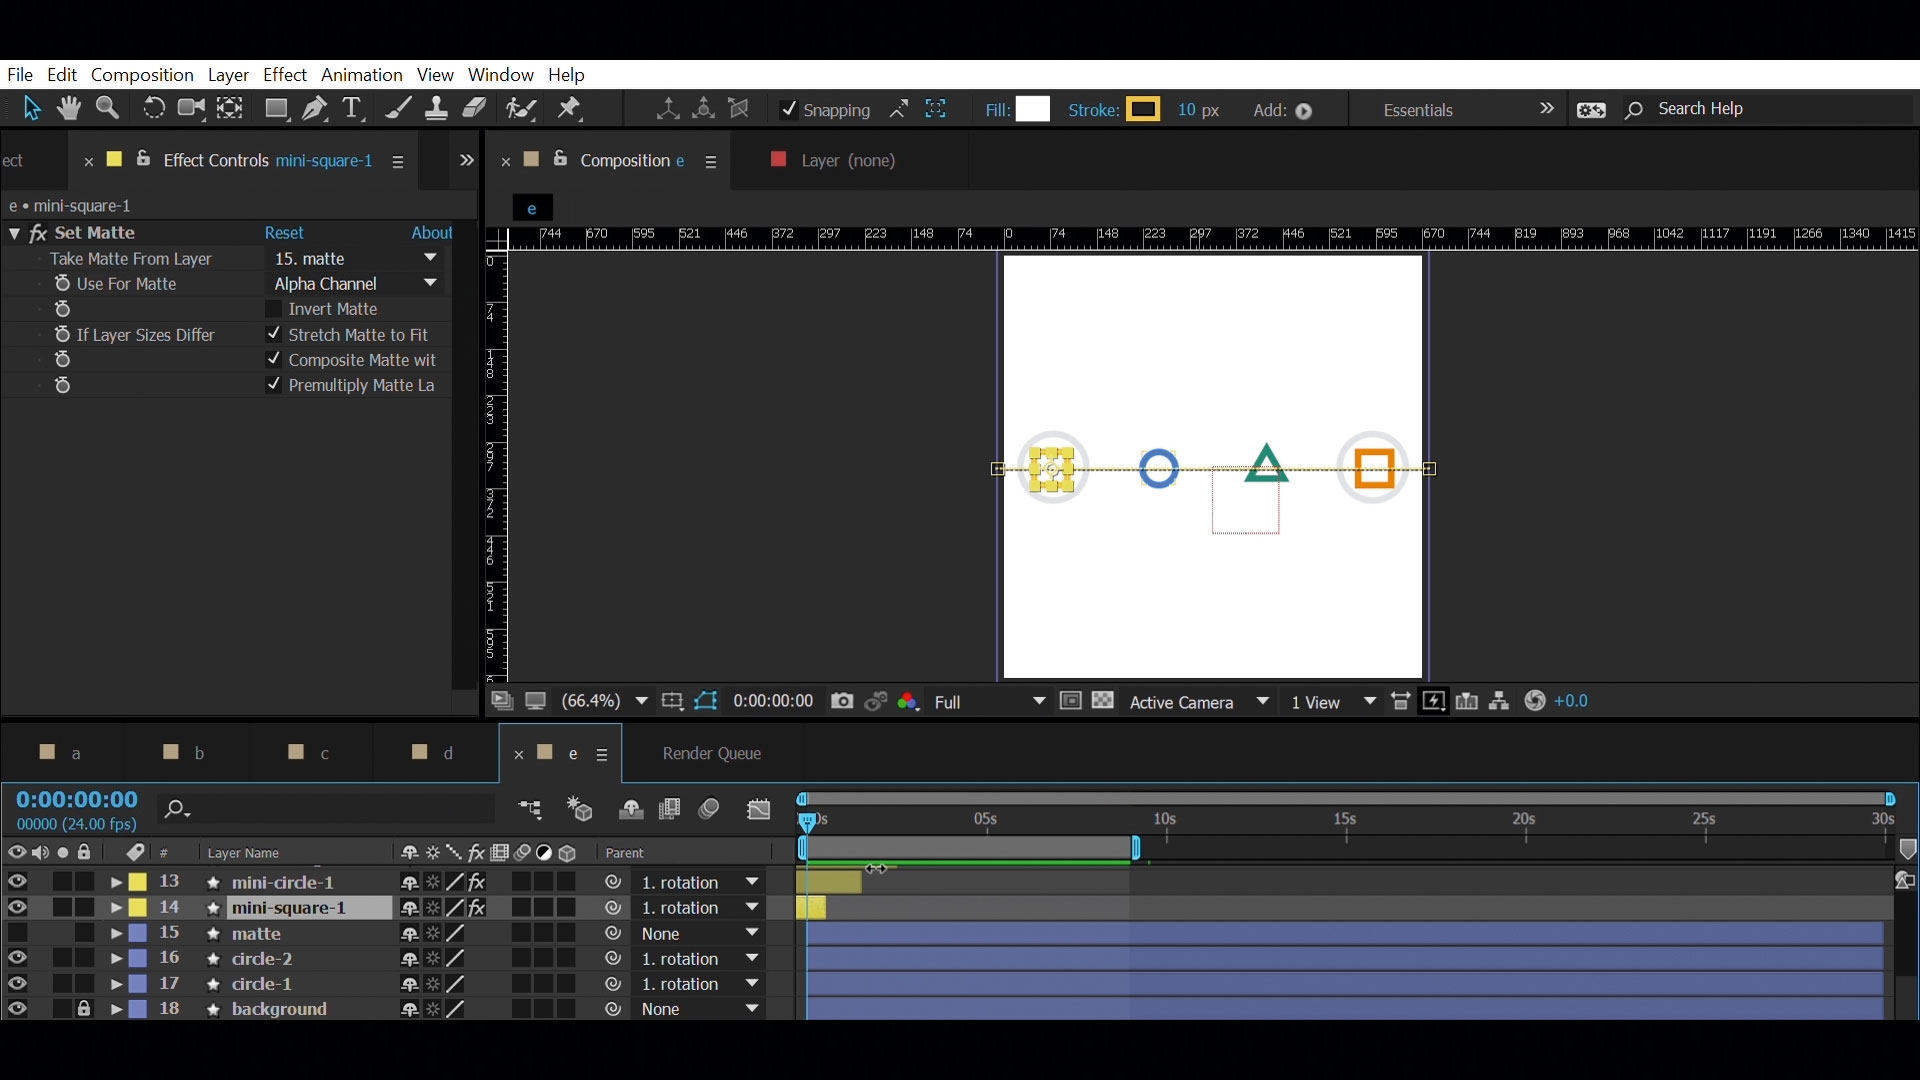 Create a seamless repeat animation in After Effects - Make it loop